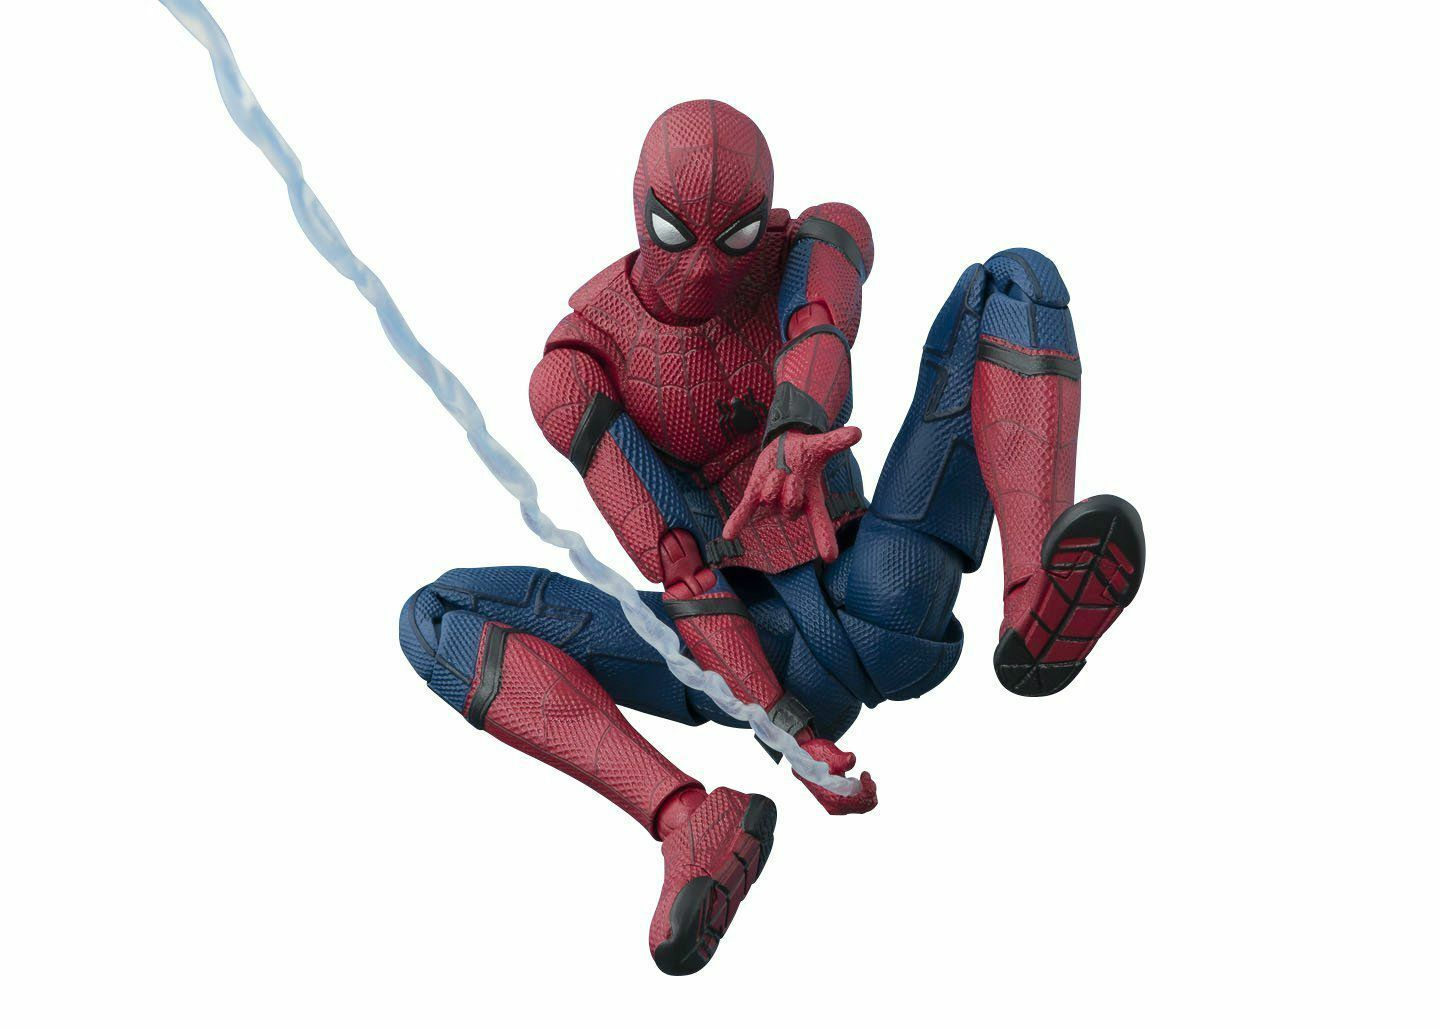 S.H.Figuarts Marvel SPIDER-MAN Homecoming Ver Action Figure BANDAI NEW Japan F/S